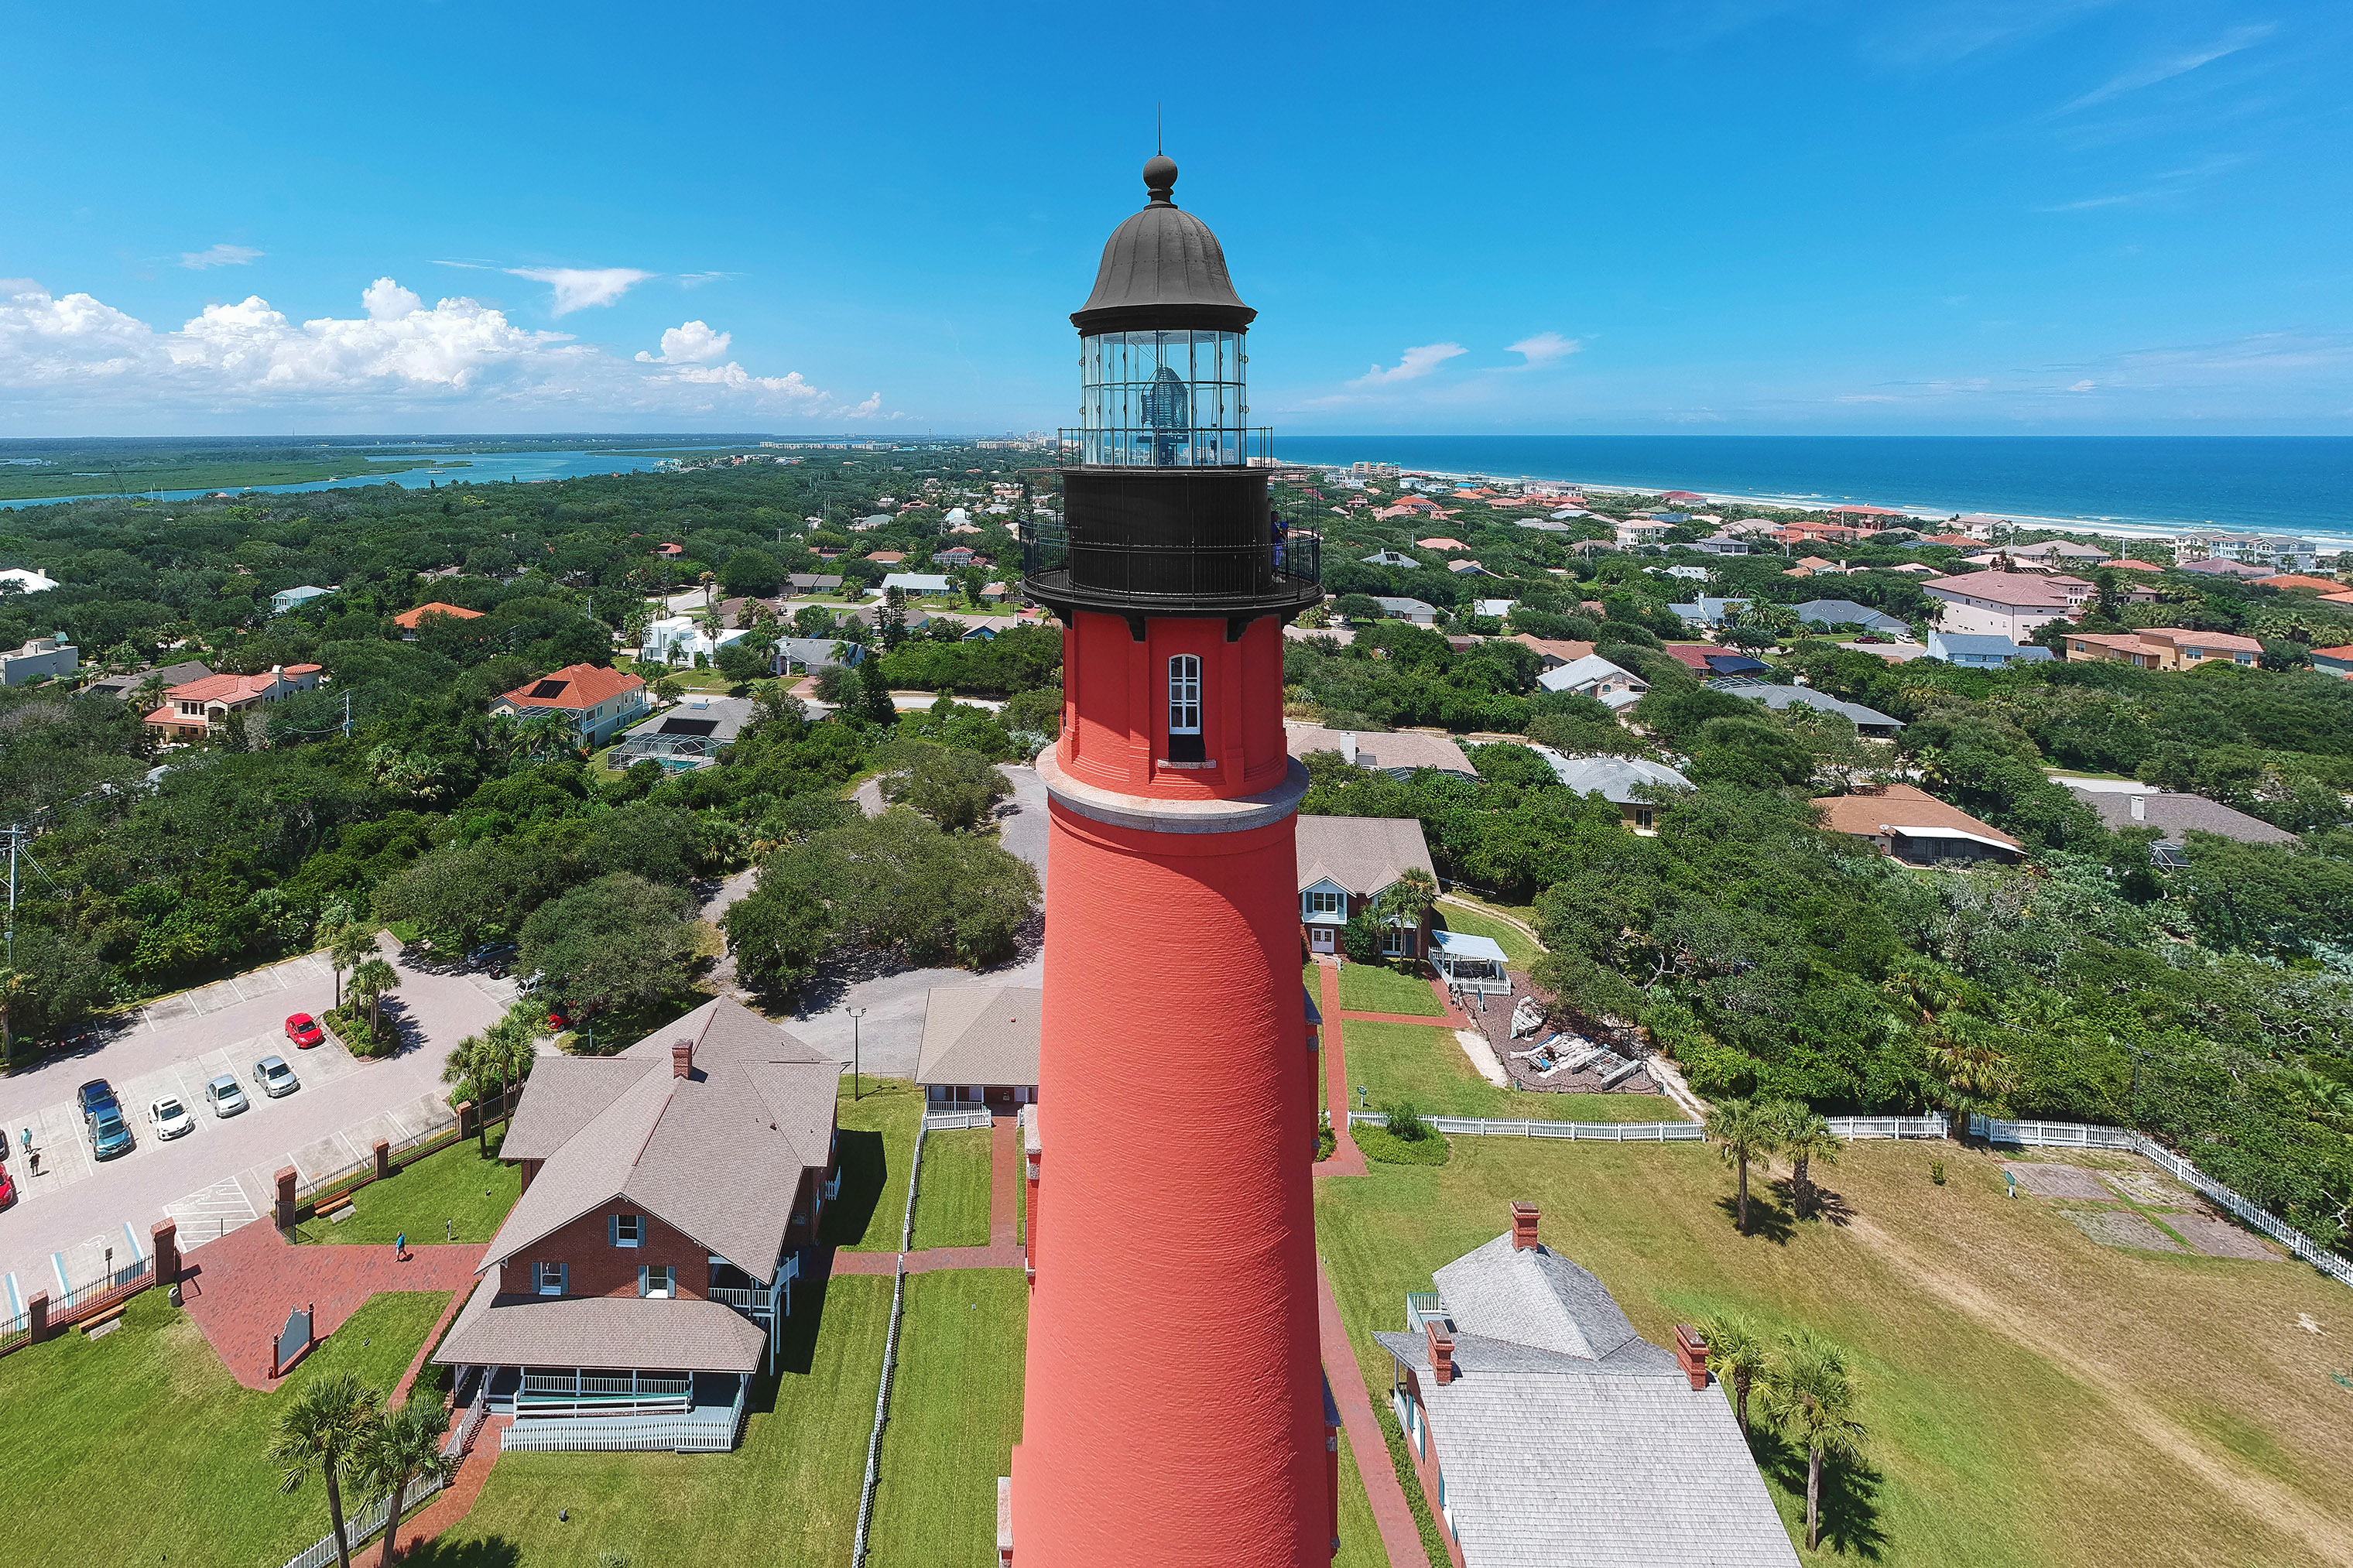 The well-preserved Ponce de Leon Inlet Lighthouse towers above the town.